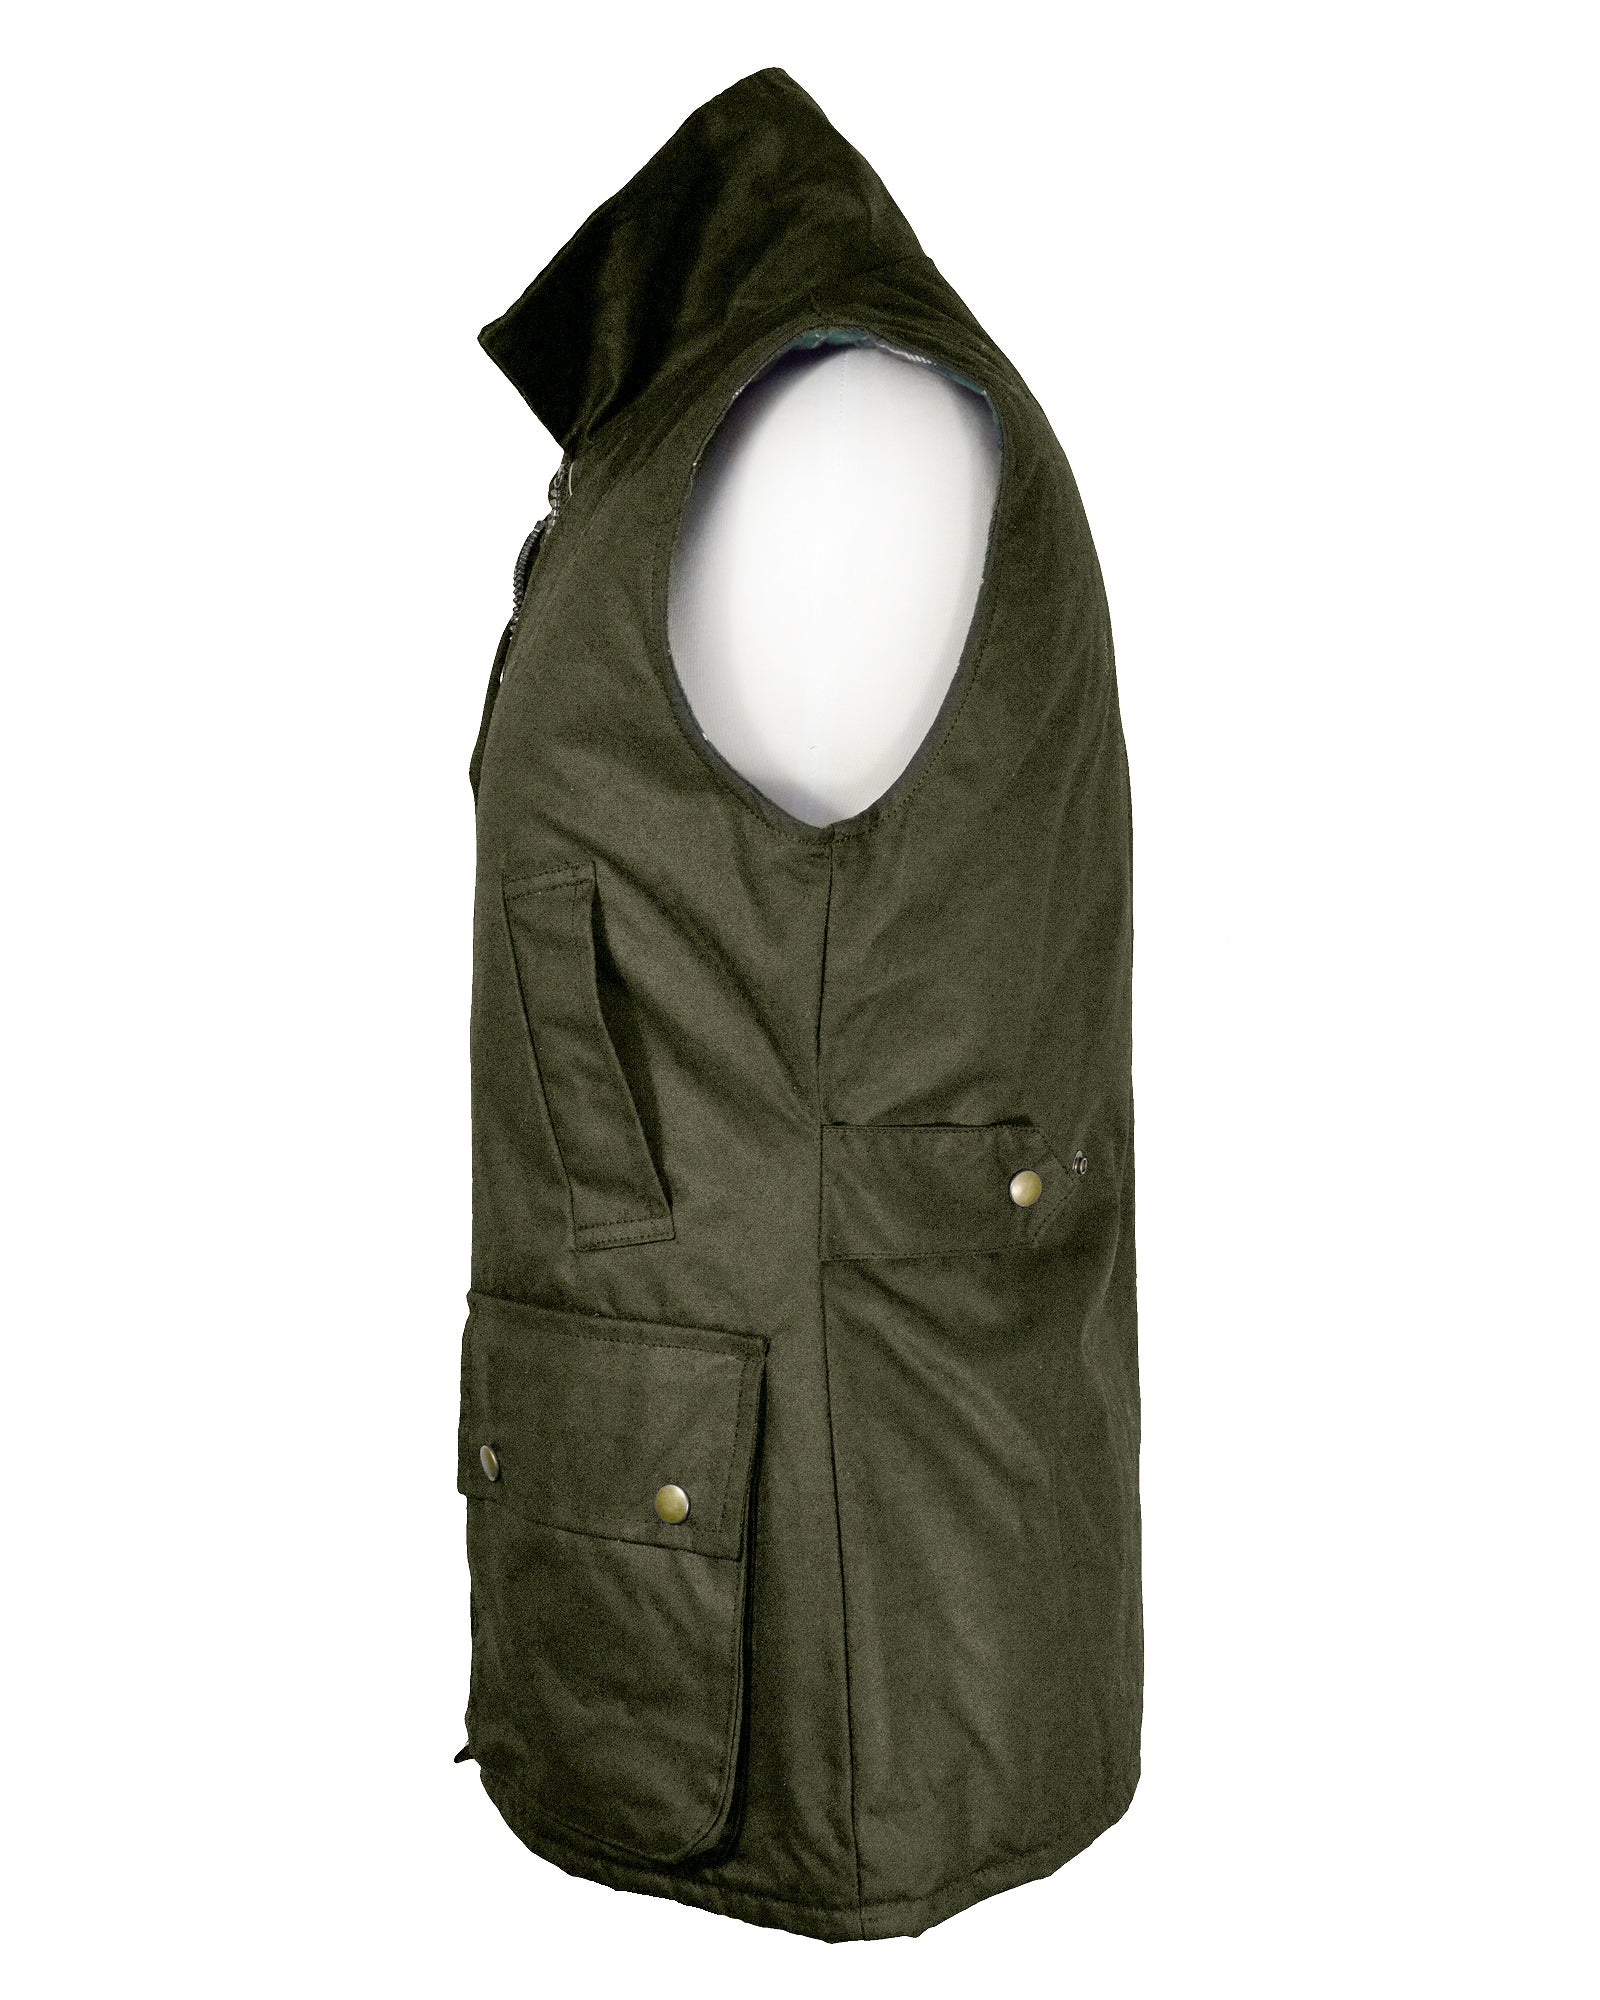 Regents View Womens Fitted Wax Waistcoat Body Warmer - Olive Green